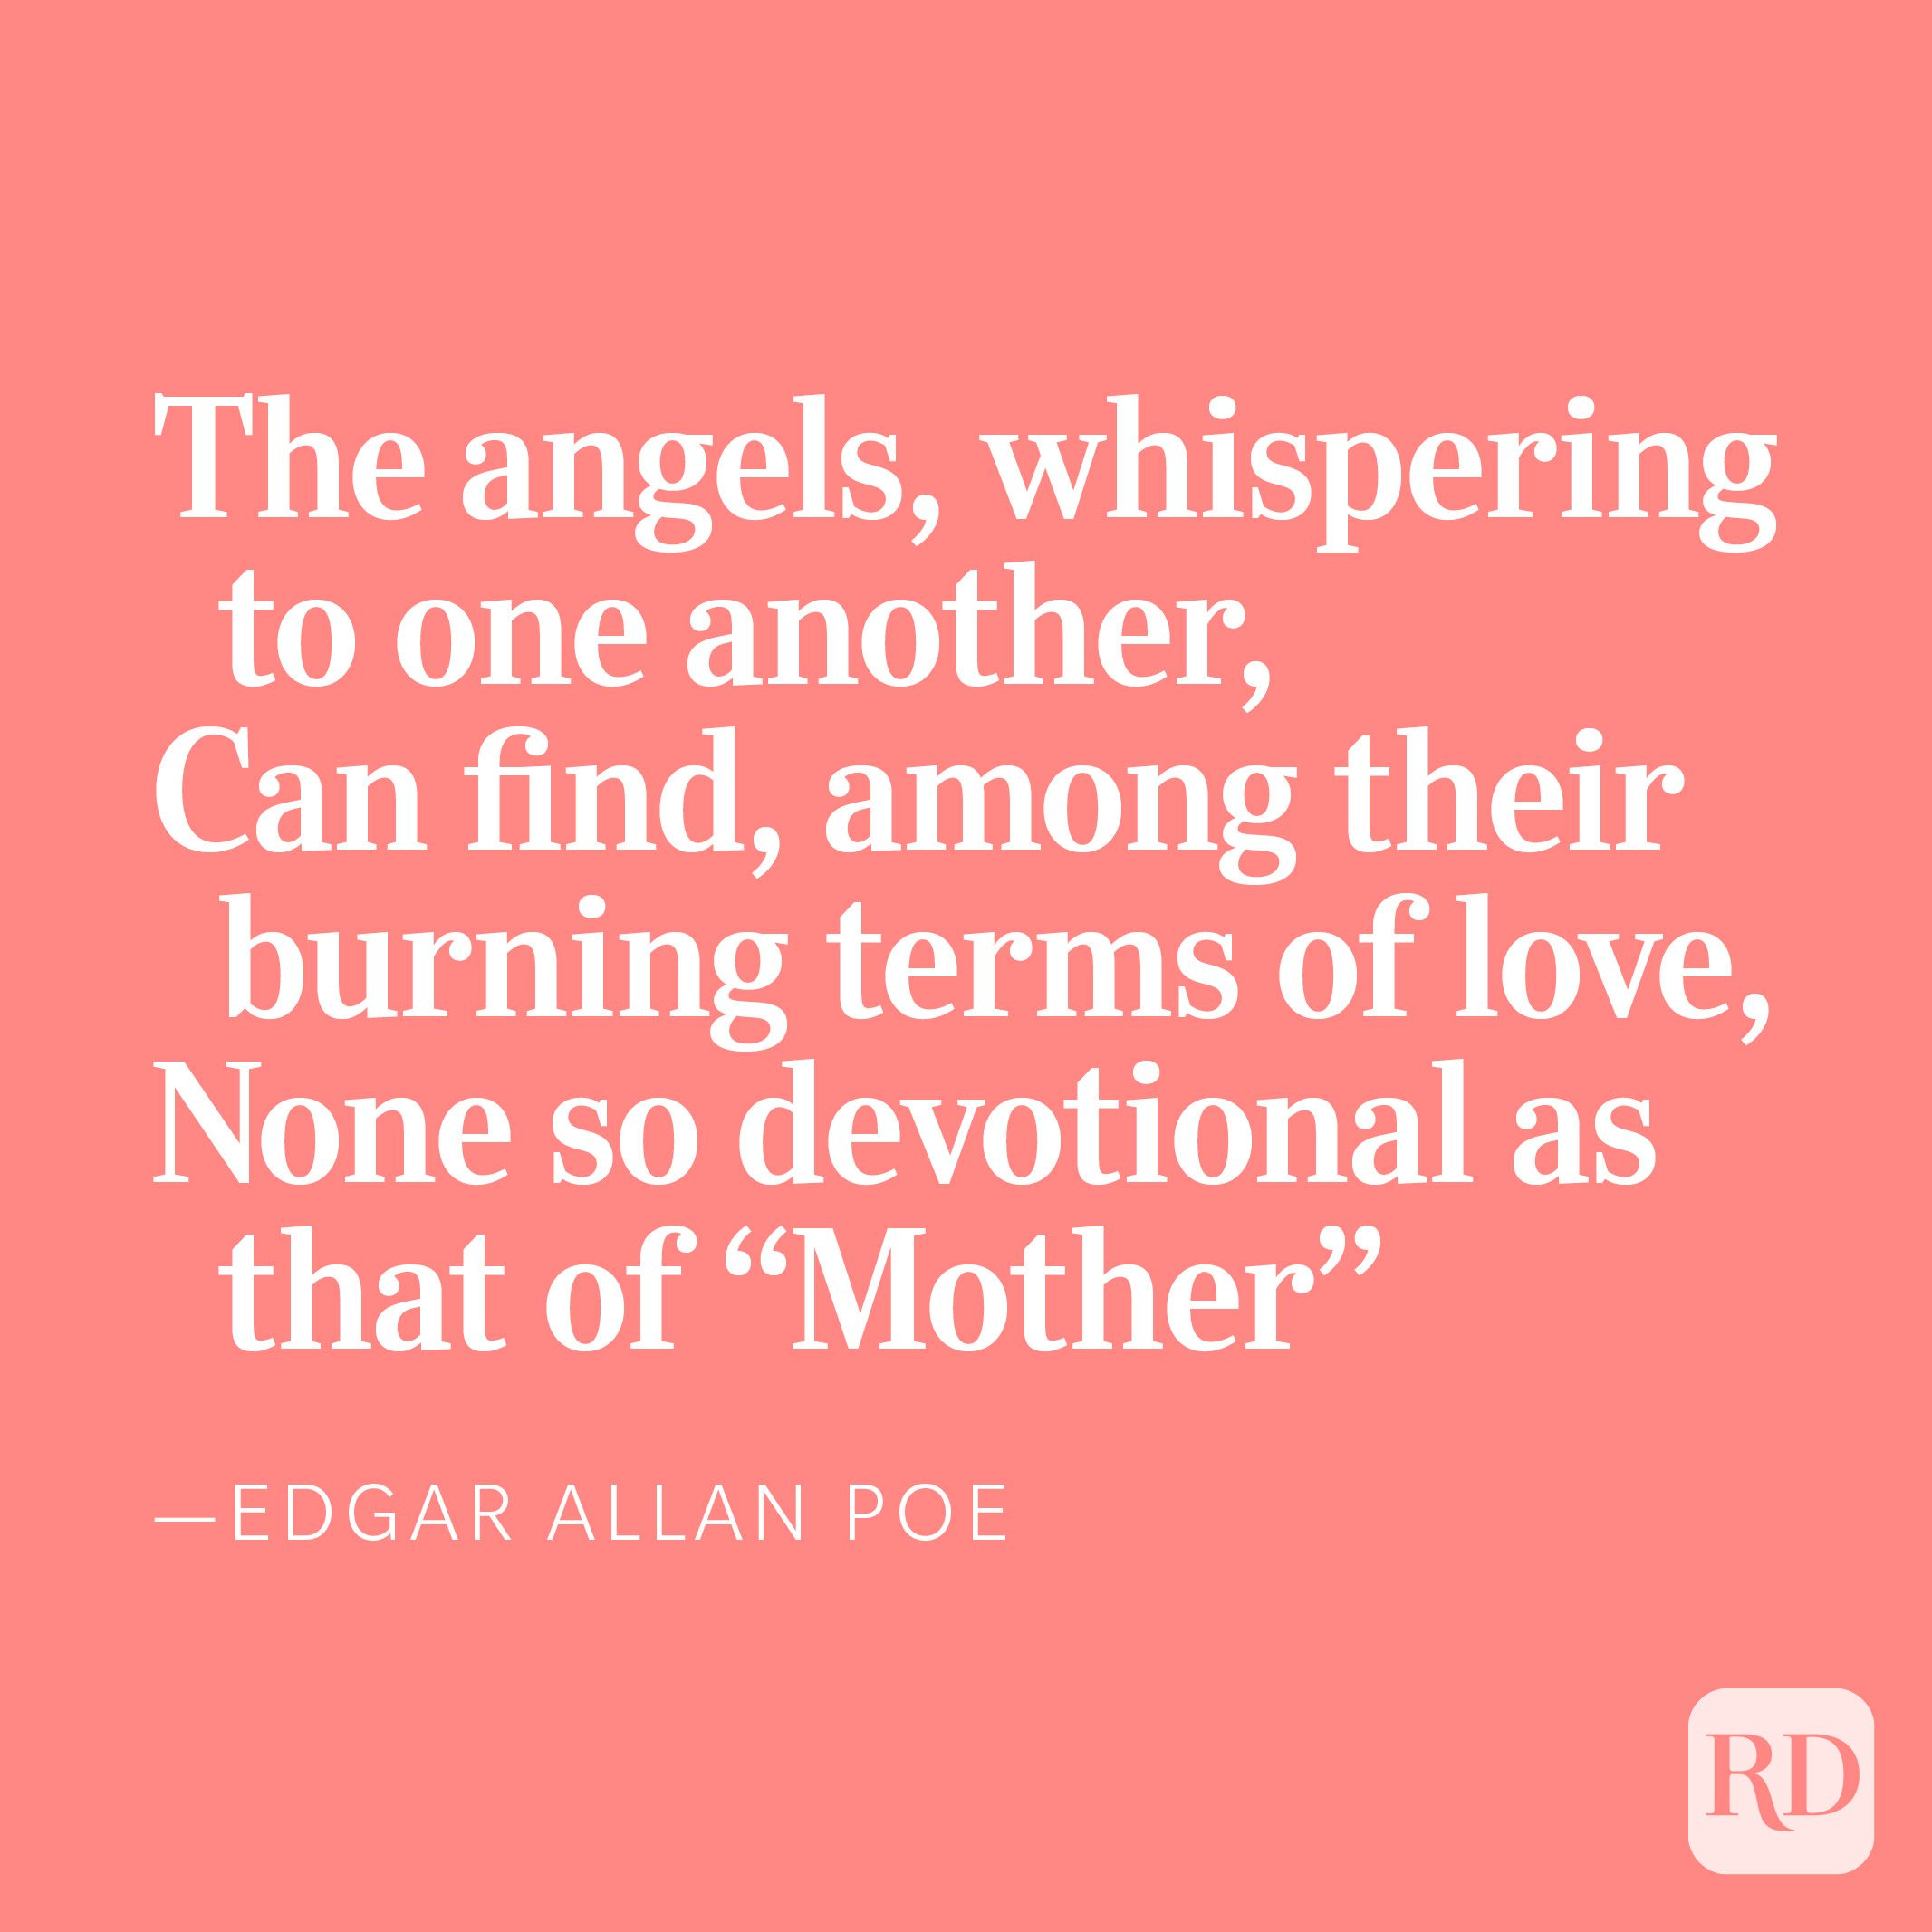 """The angels, whispering to one another,Can find, among their burning terms of love,None so devotional as that of """"Mother,"""" —Edgar Allan Poe"""